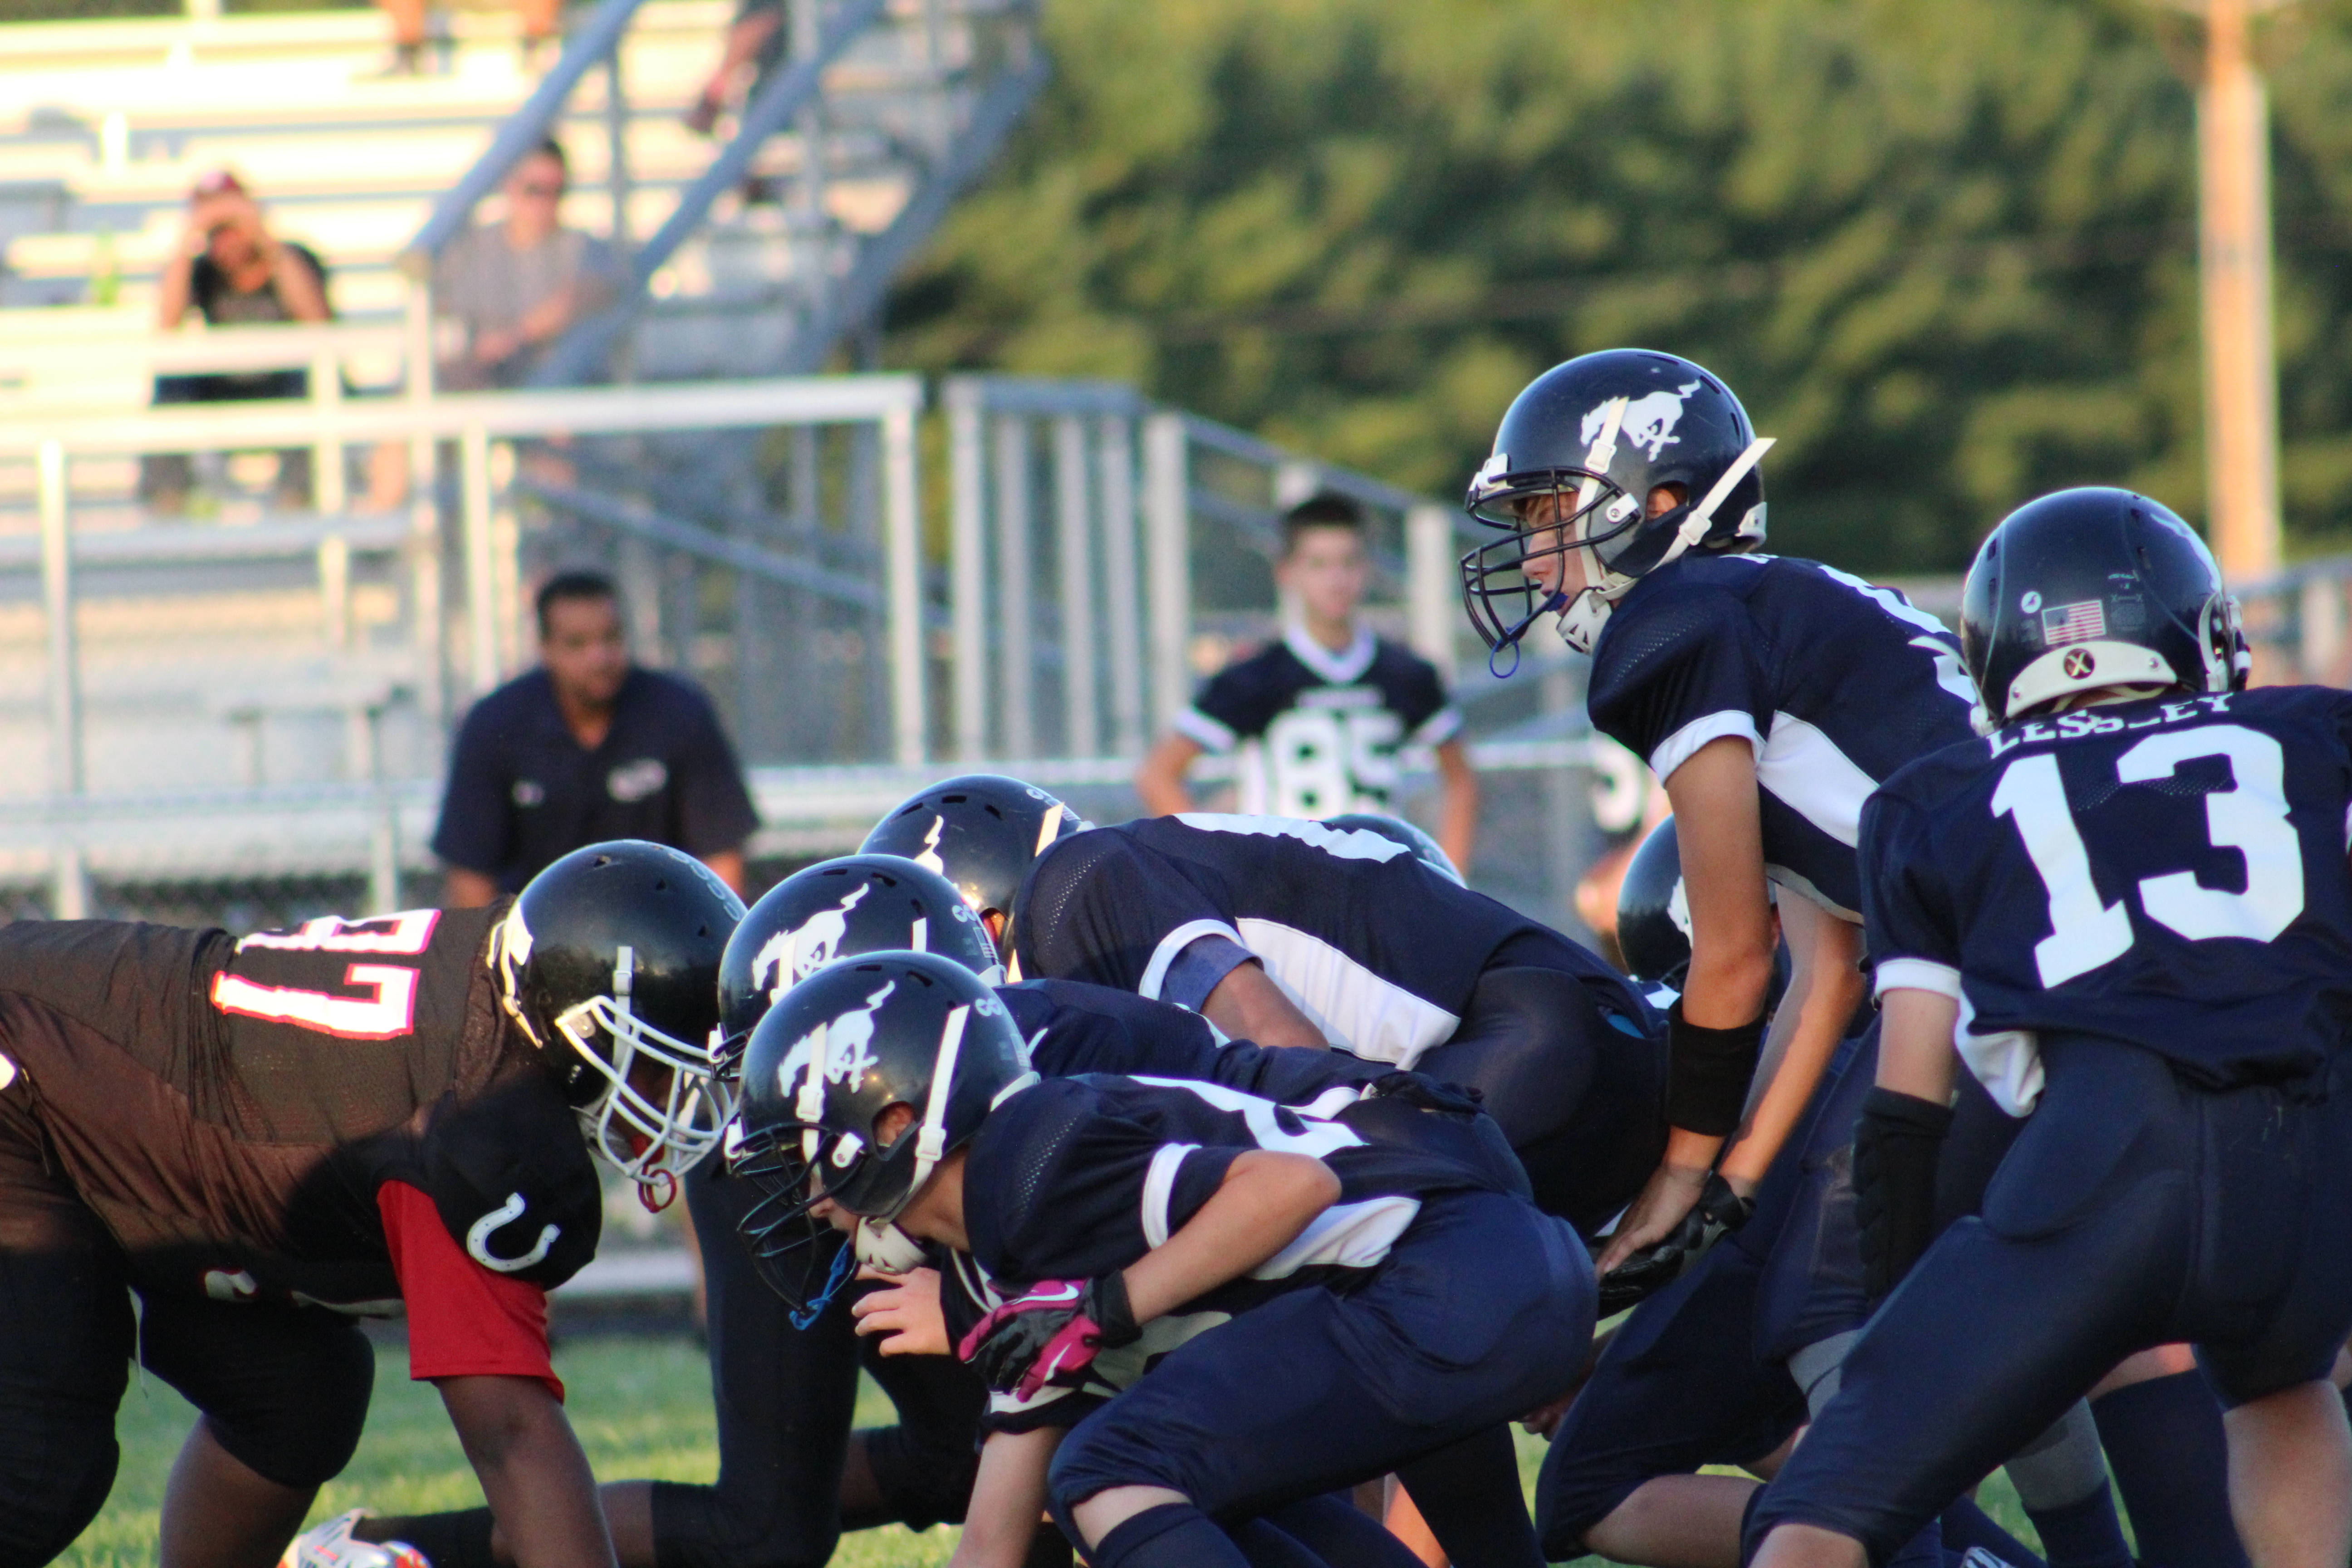 Wainwright football team in action